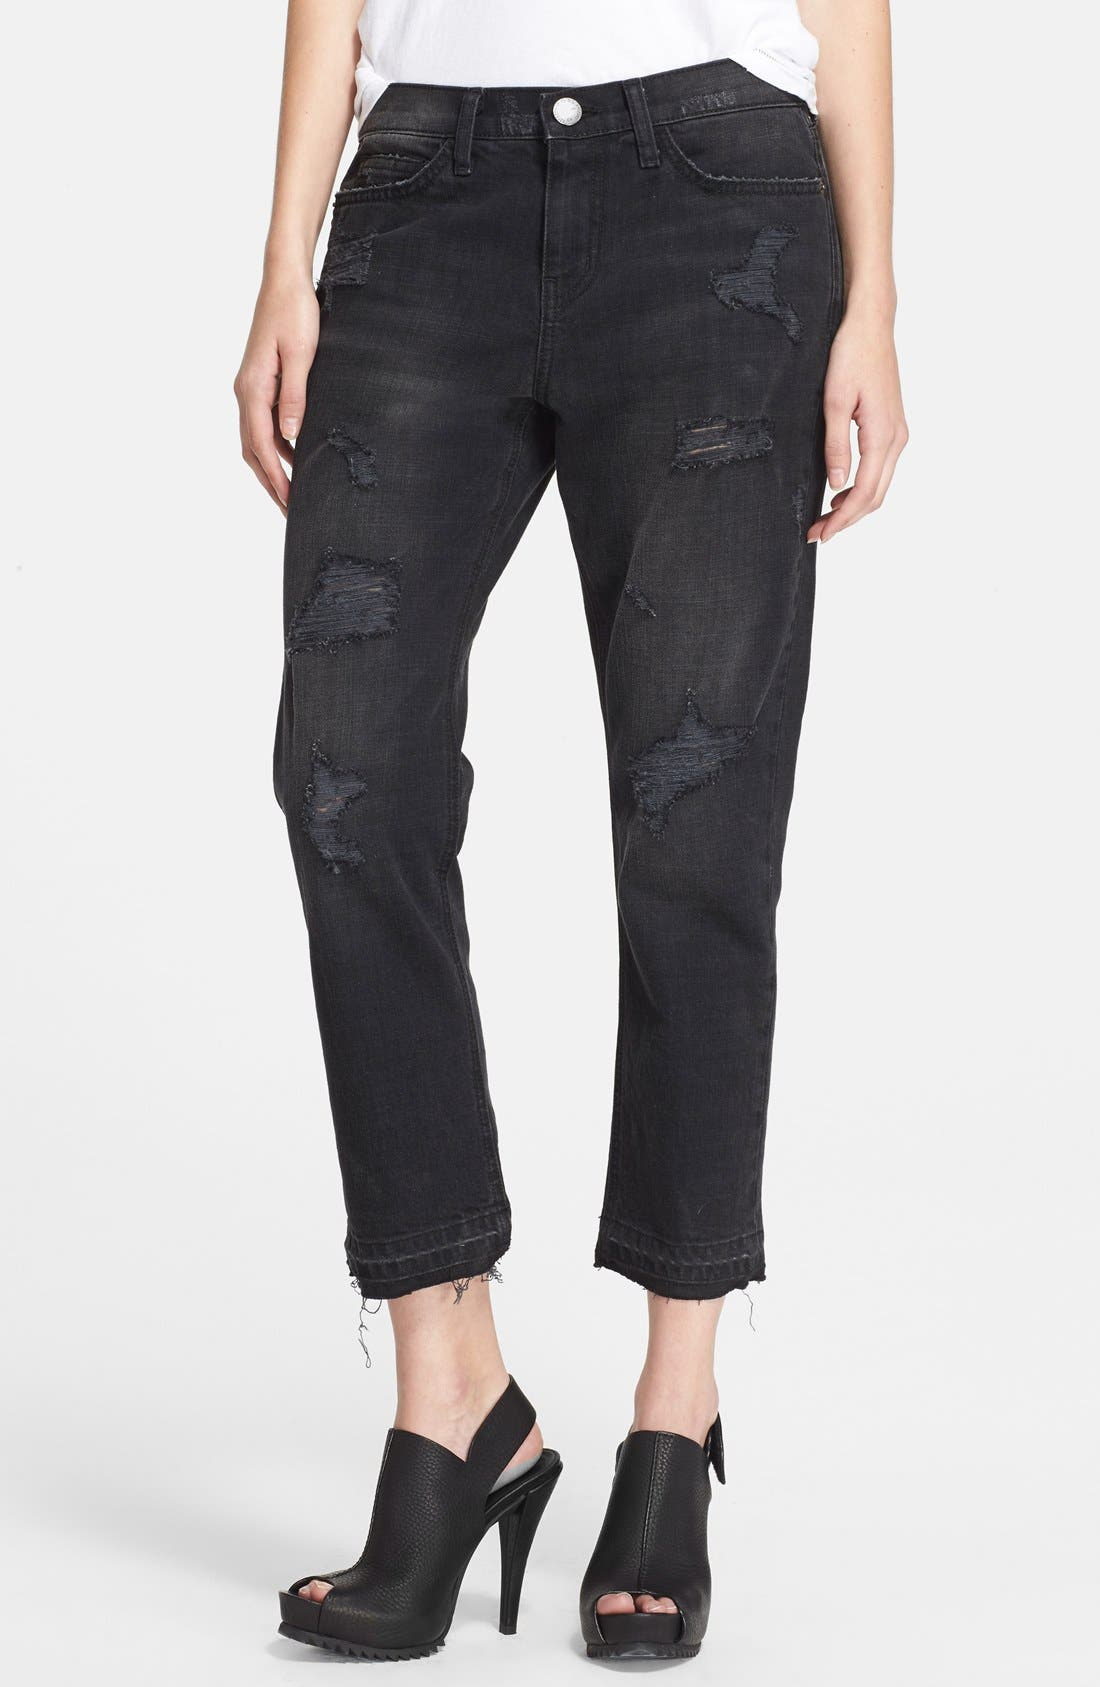 Alternate Image 1 Selected - Current/Elliott 'The Cropped Straight' Destroyed Jeans (Townhouse Destroy) (Nordstrom Exclusive)